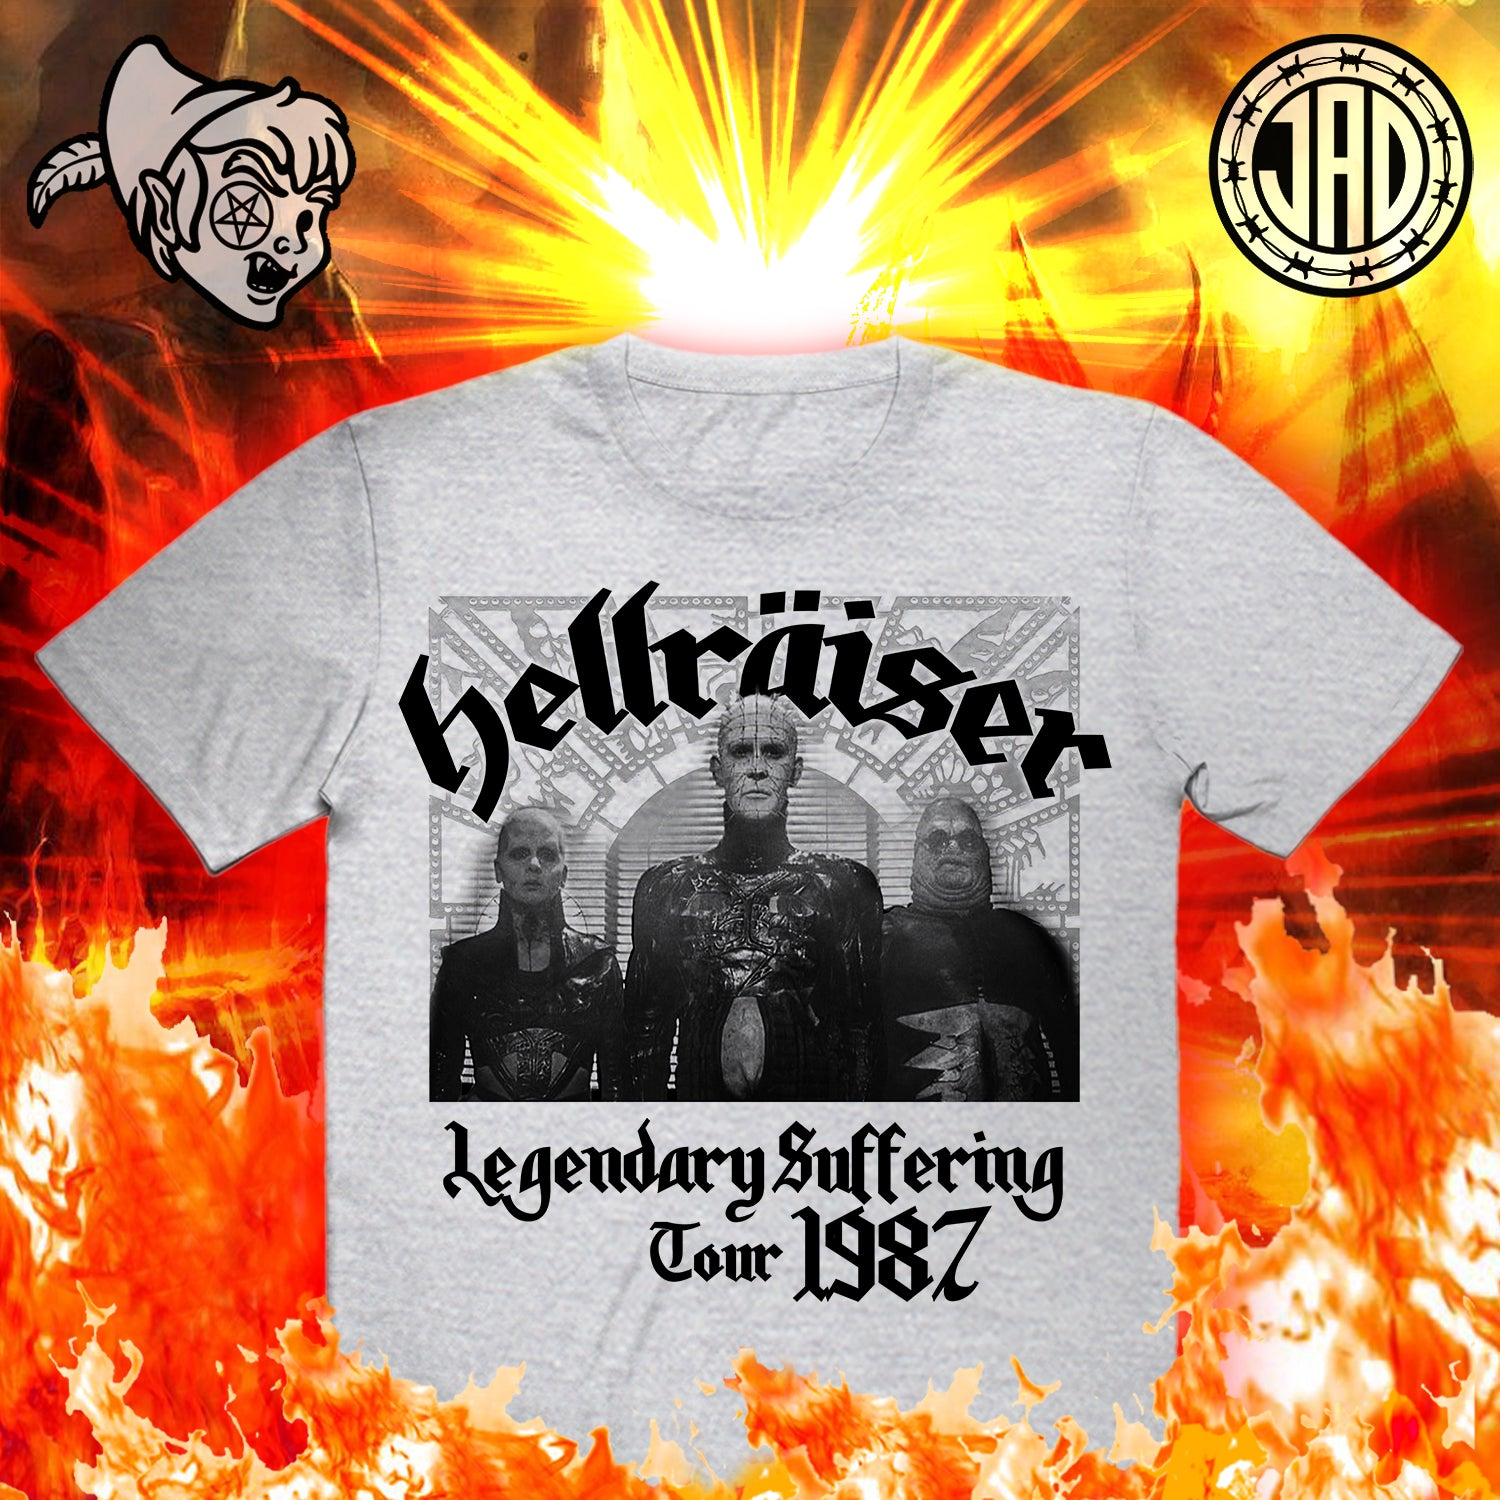 Legendary Suffering Tour 1987 - Men's (Unisex) Tee